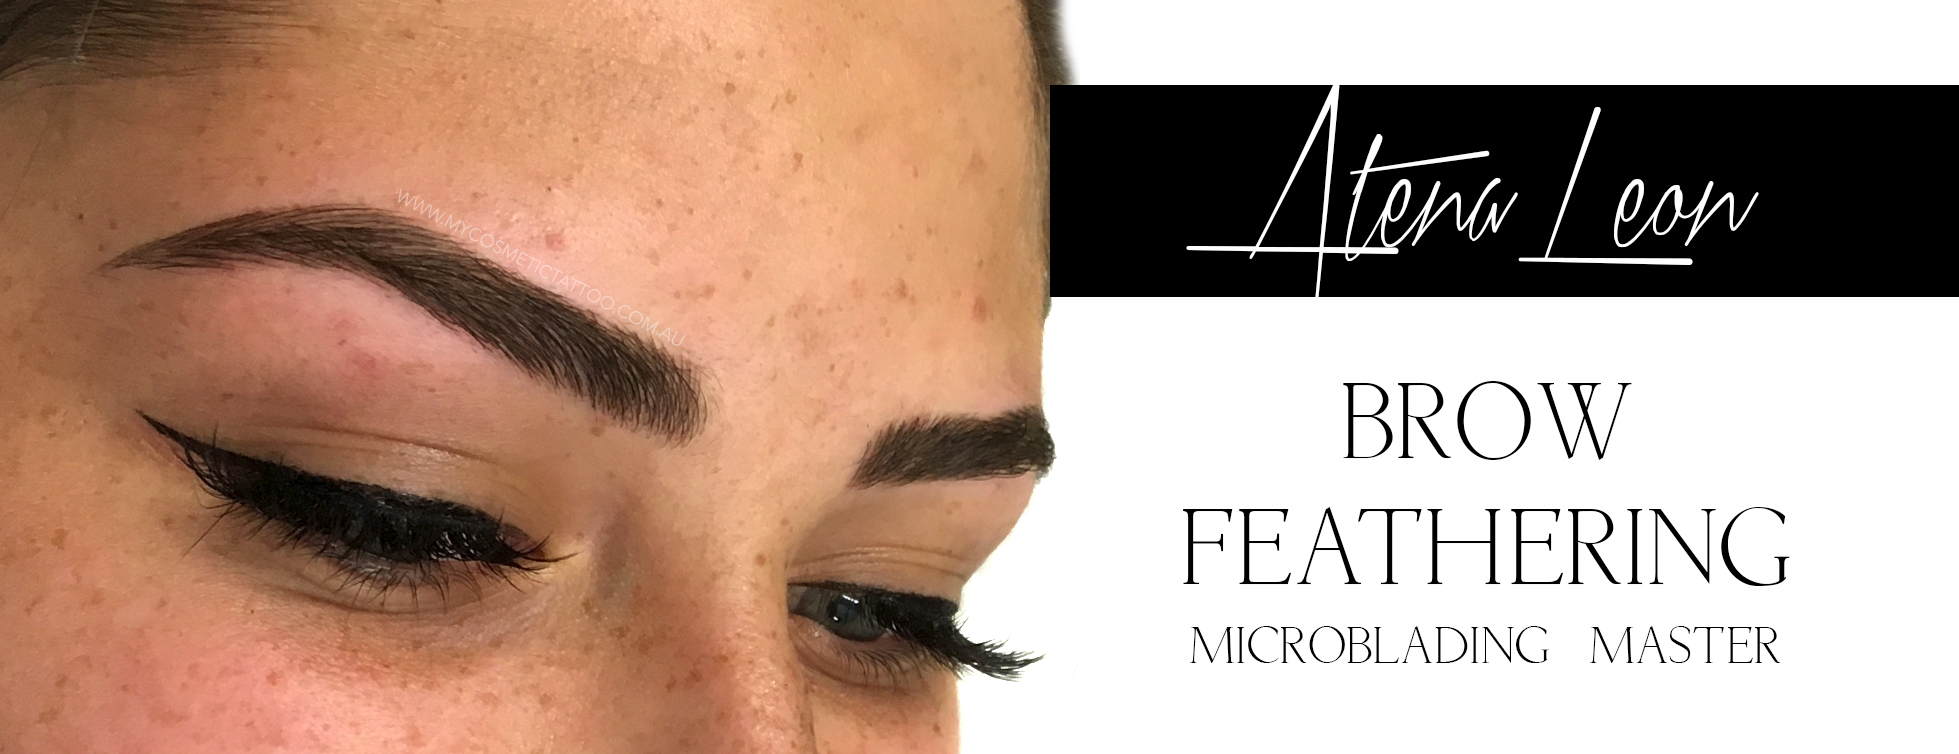 Brow Feathering by Atena Leon